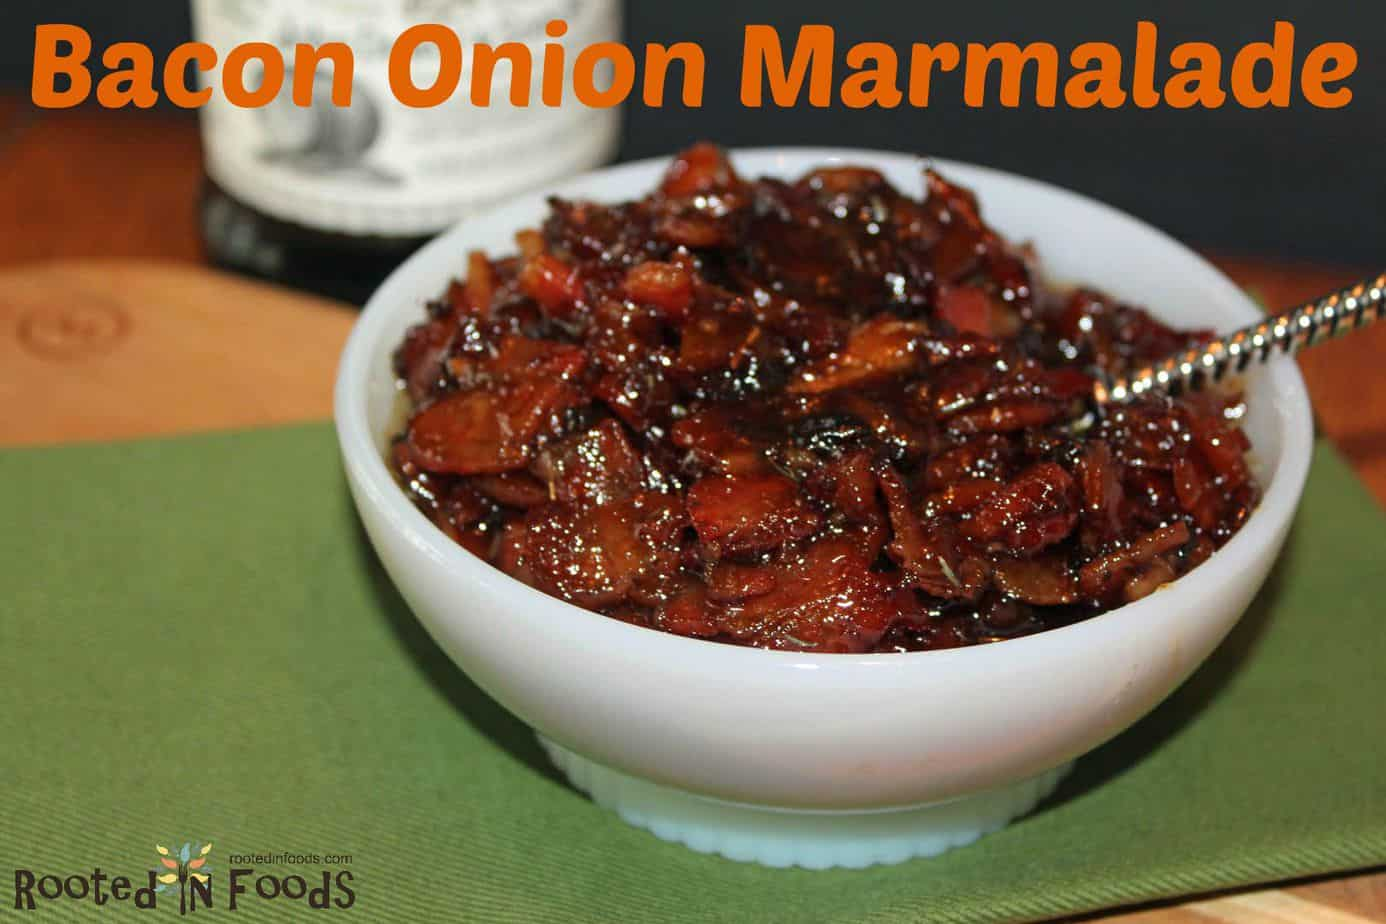 Recipes / Appetizers / Bacon and Caramelized Onion Marmalade